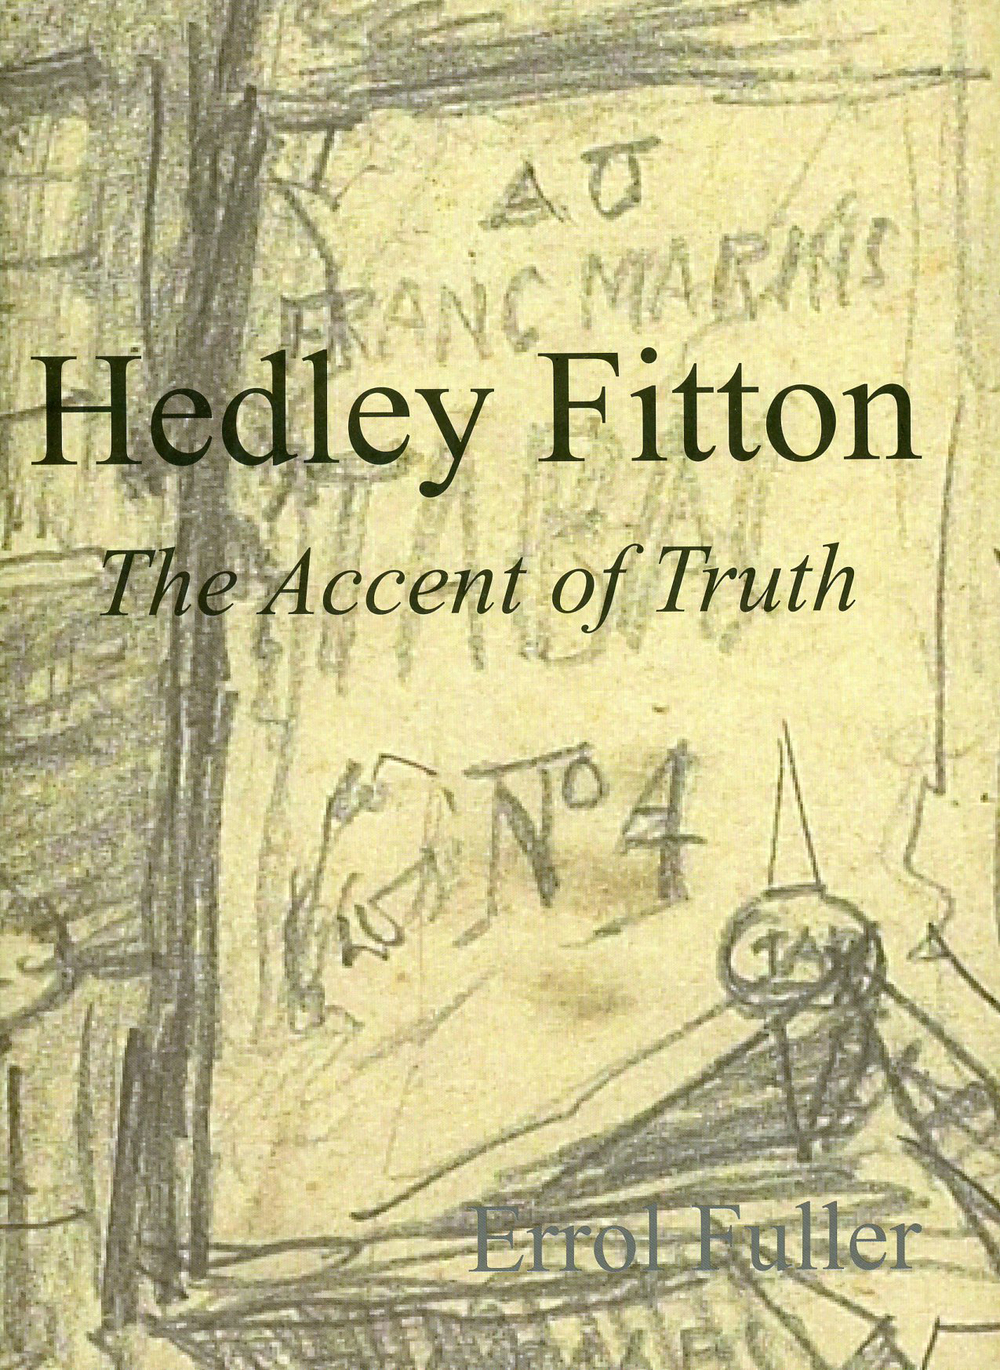 books Hedley Fitton.jpg